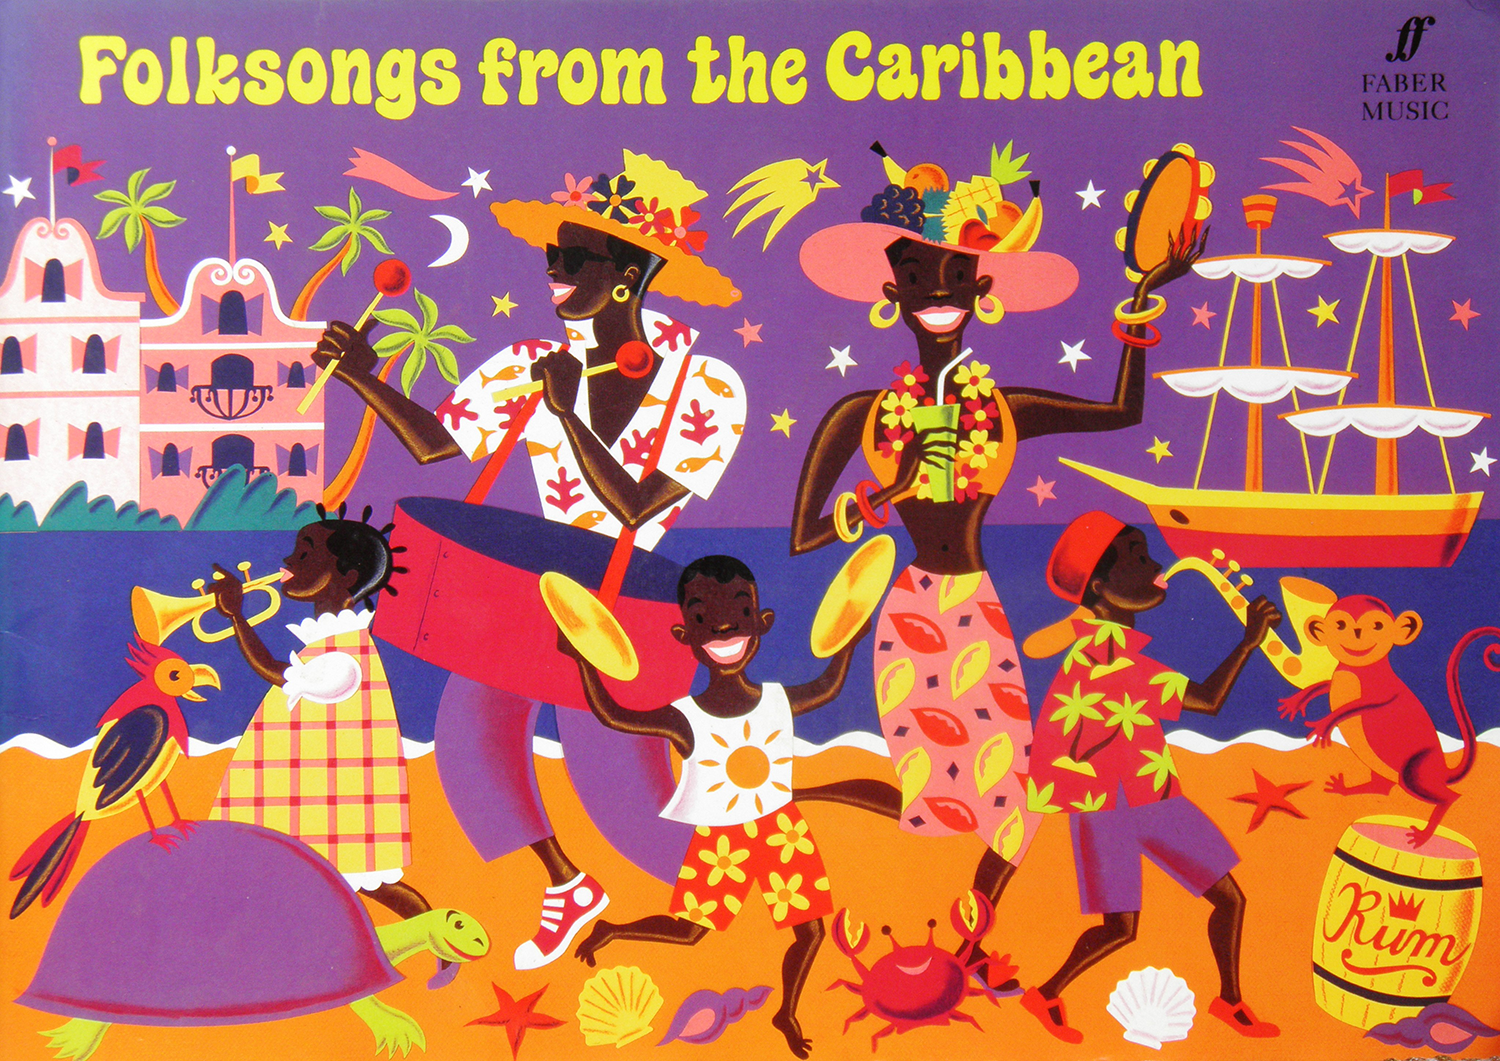 Folksongs from Caribbean